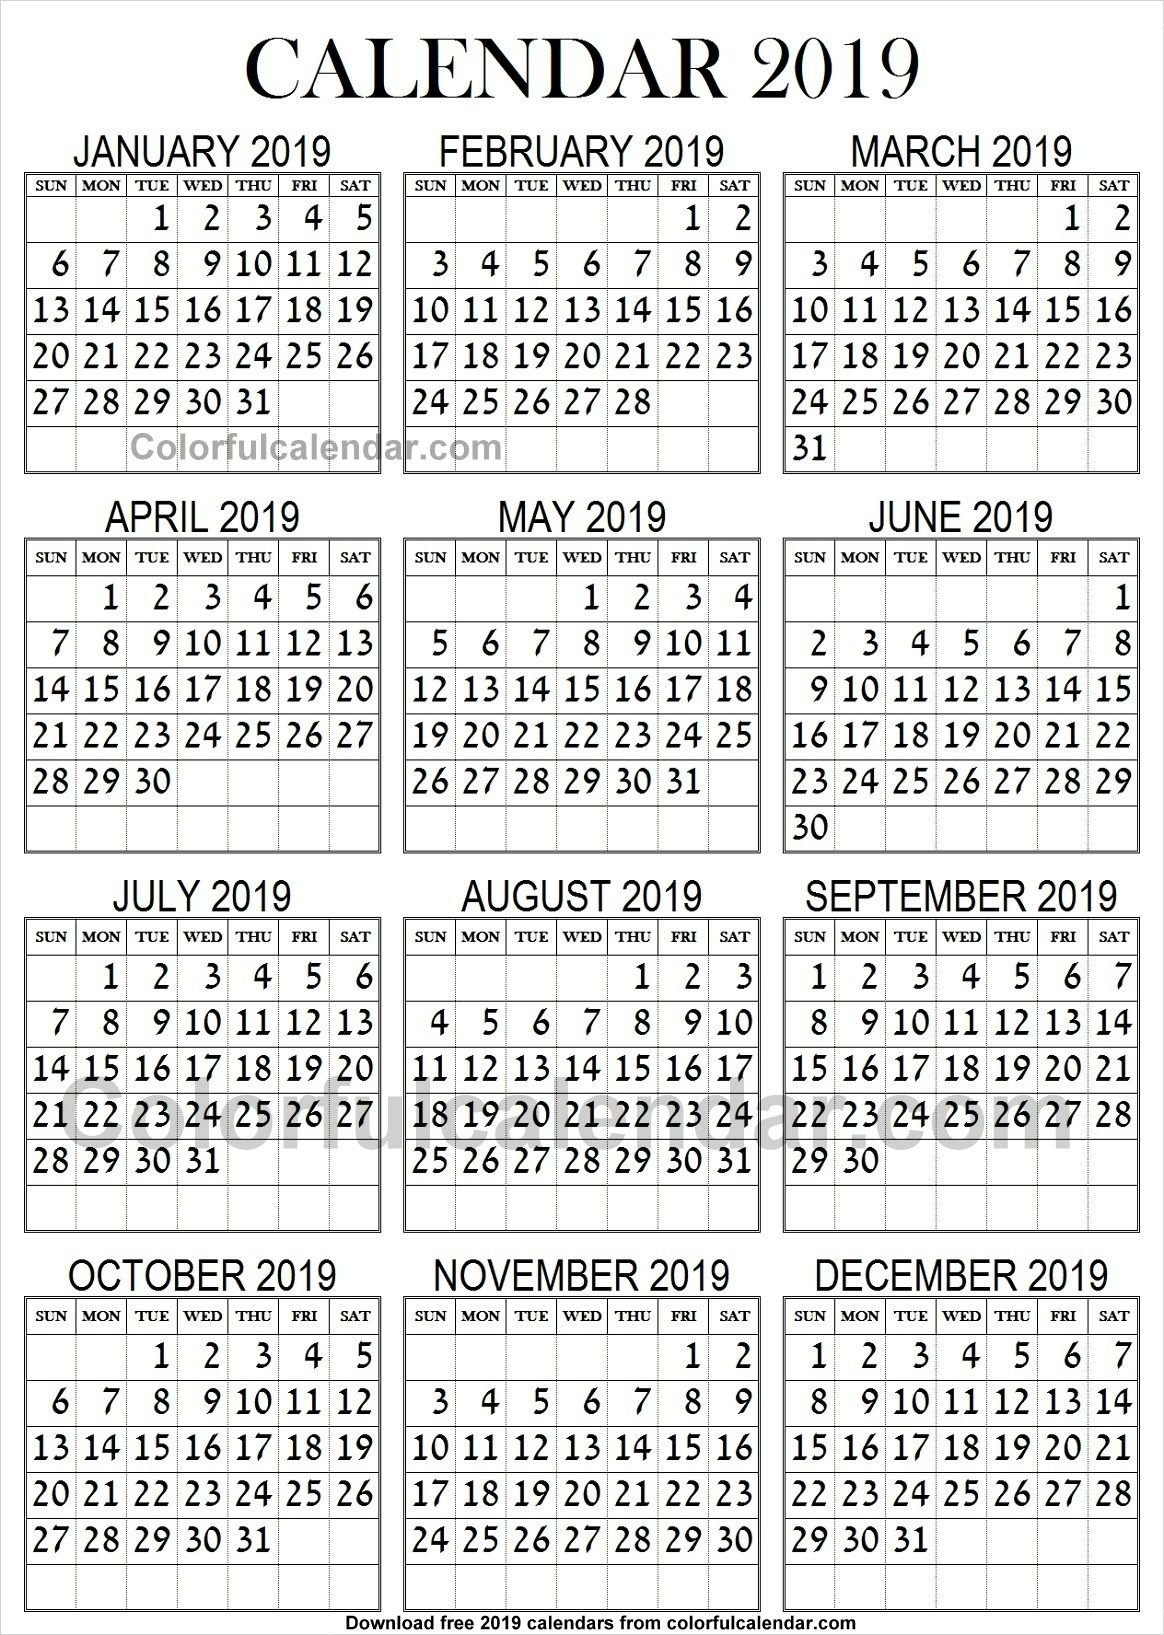 2019 Calendar Large Print | 2019 Yearly Calendars | Calendar, 2019 Calendar 2019 Large Print